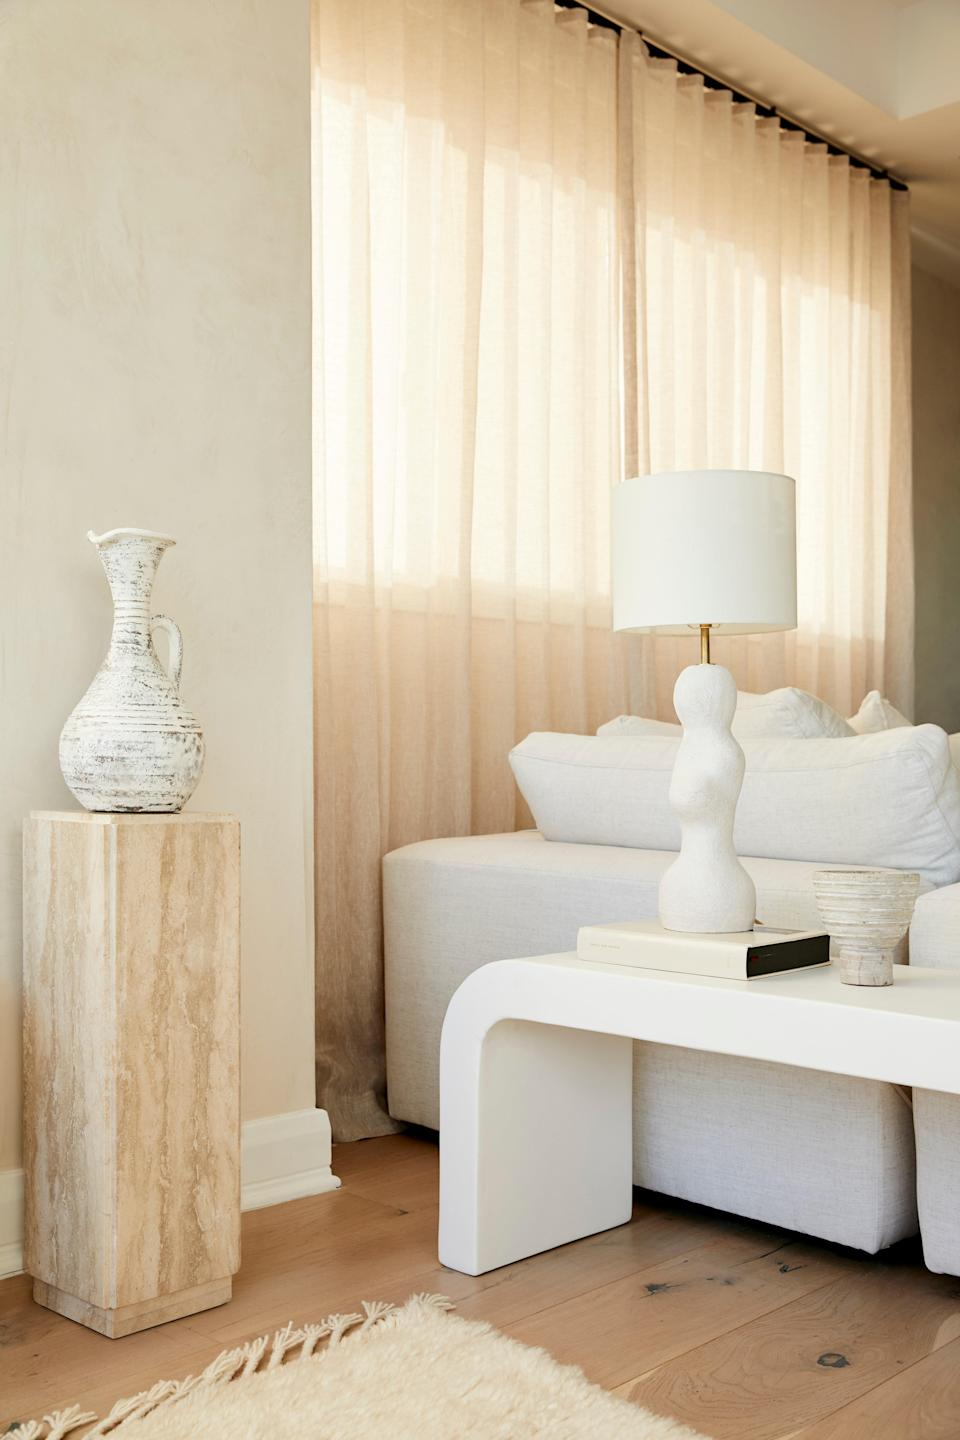 """""""It's really a collaborative effort,"""" says Hewitt of working with Garcia. Inspired by chic European decor, the duo set out to find a healthy balance of luxury and warmth. Here, a white plaster bench resides next to a weathered marble side table."""